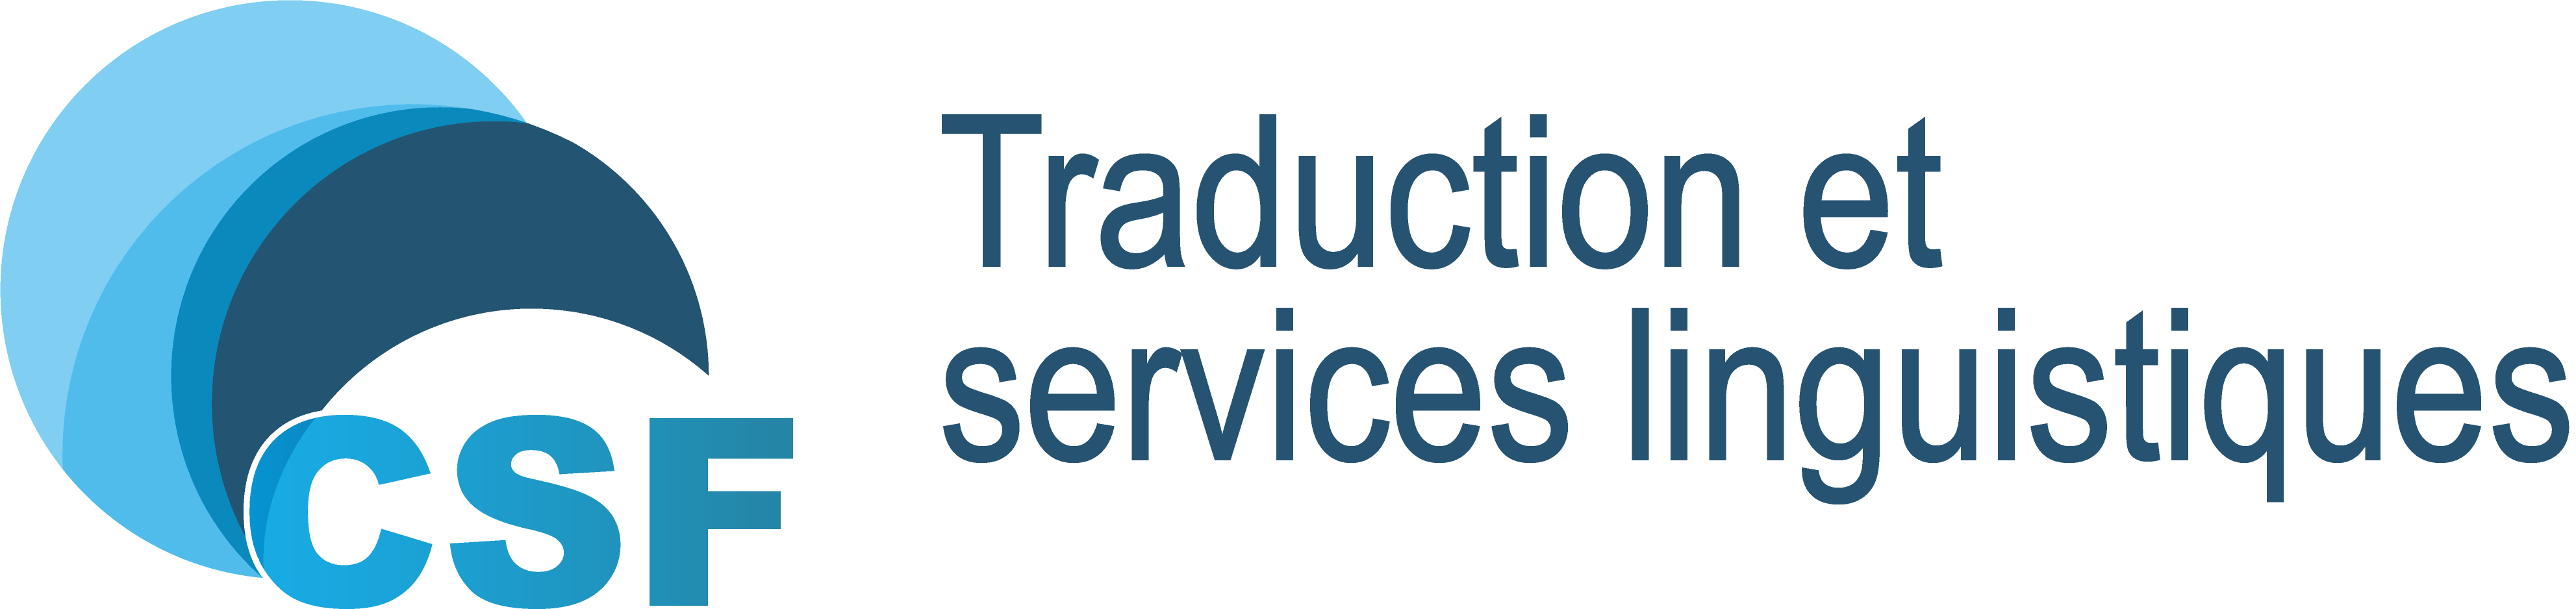 Corporate Services Traduction Linguistic Services Translation Editing Proofreading